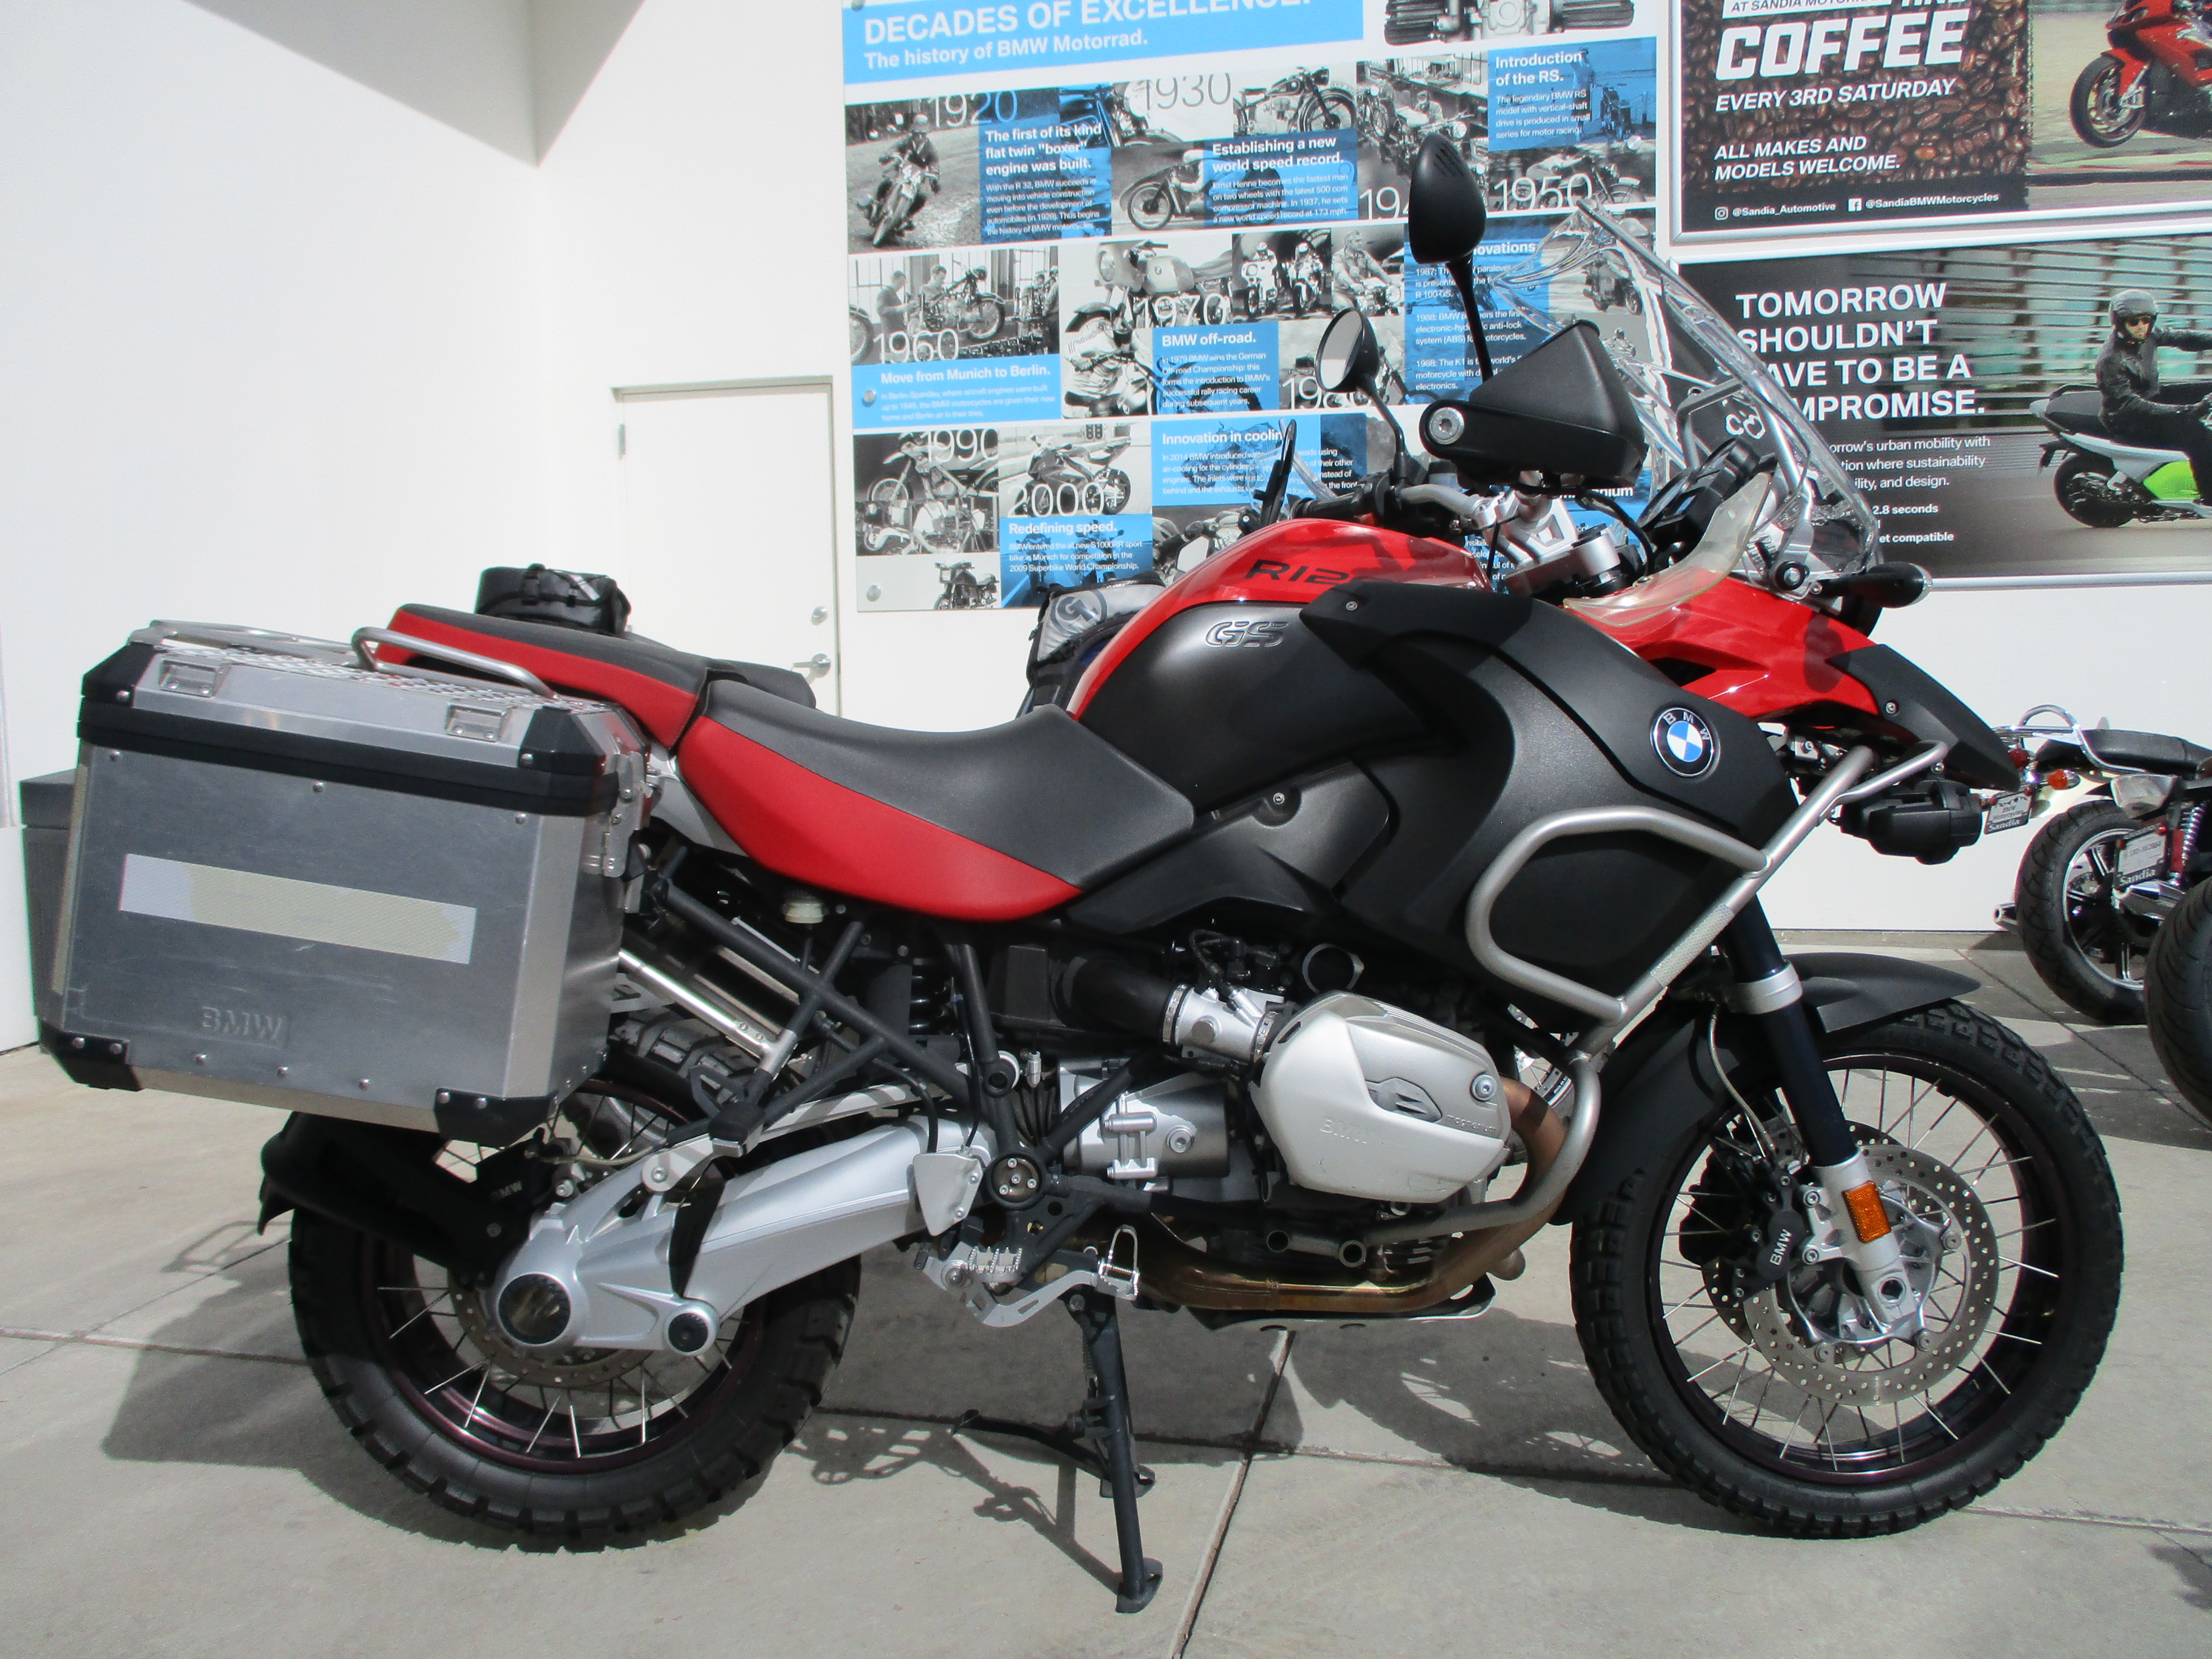 Pre-Owned Motorcycle Inventory - R1200GSA - Sandia BMW ...